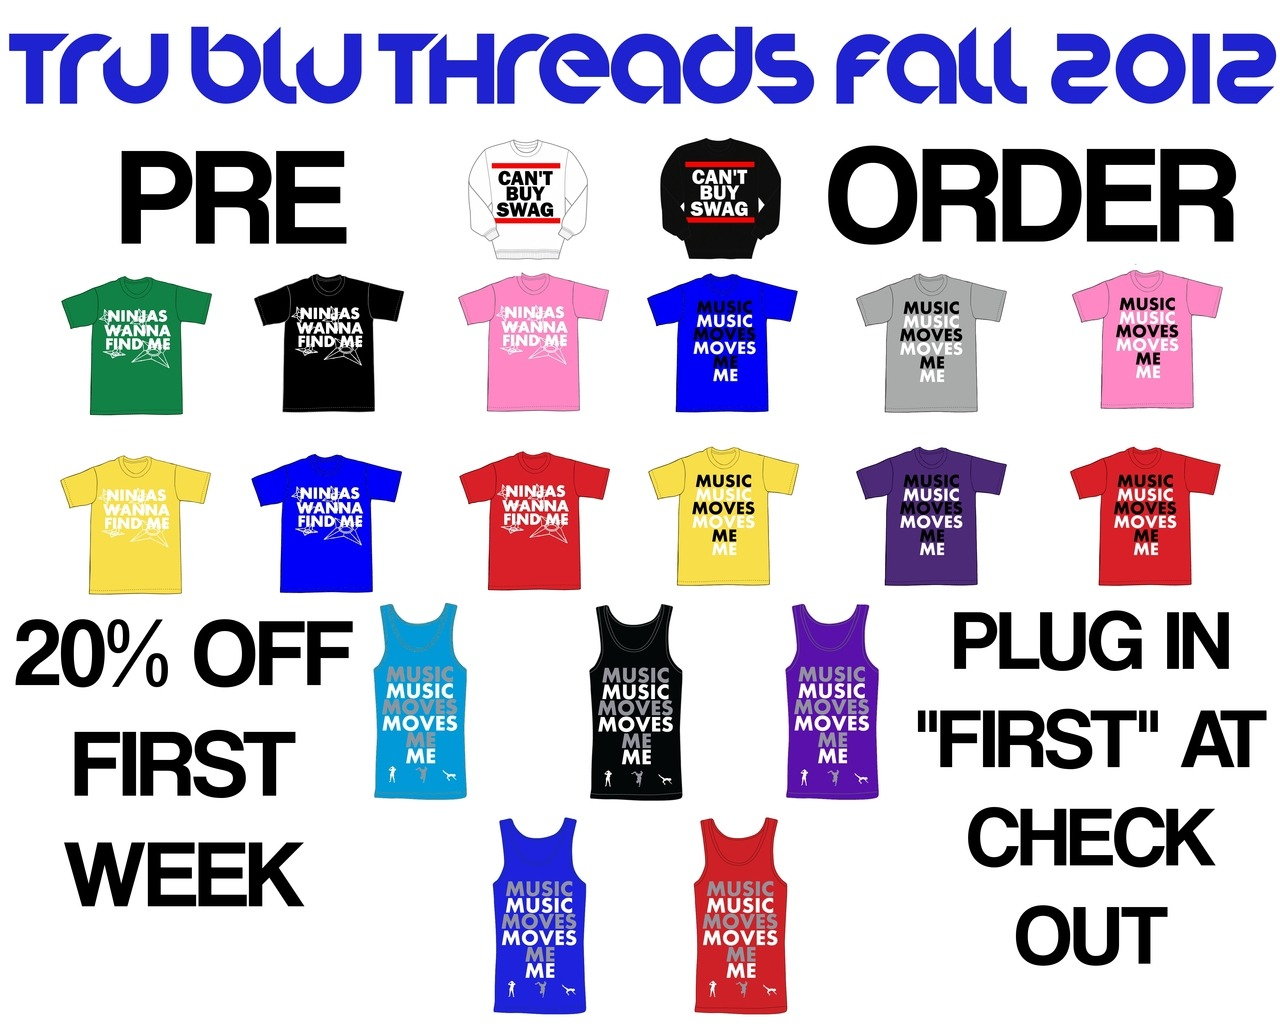 Tru Blu Threads Fall 12 Pre-Order http://www.trubluthreads.bigcartel.com http://www.trubluthreads.bigcartel.com http://www.trubluthreads.bigcartel.com For the first week, you can get 20% OFF of your entire order by plugging in FIRST at checkout. This is the only guaranteed way for you to get exactly what you want by size and color. Pre-Order ends first week of October, but the best sale is going on now. Don't forget to check out our sites for announcements and promos. Tumblr http://trubluthreads.tumblr.com Facebook www.facebook.com/TruBluThreads Twitter www.twitter.com/trubluthreads